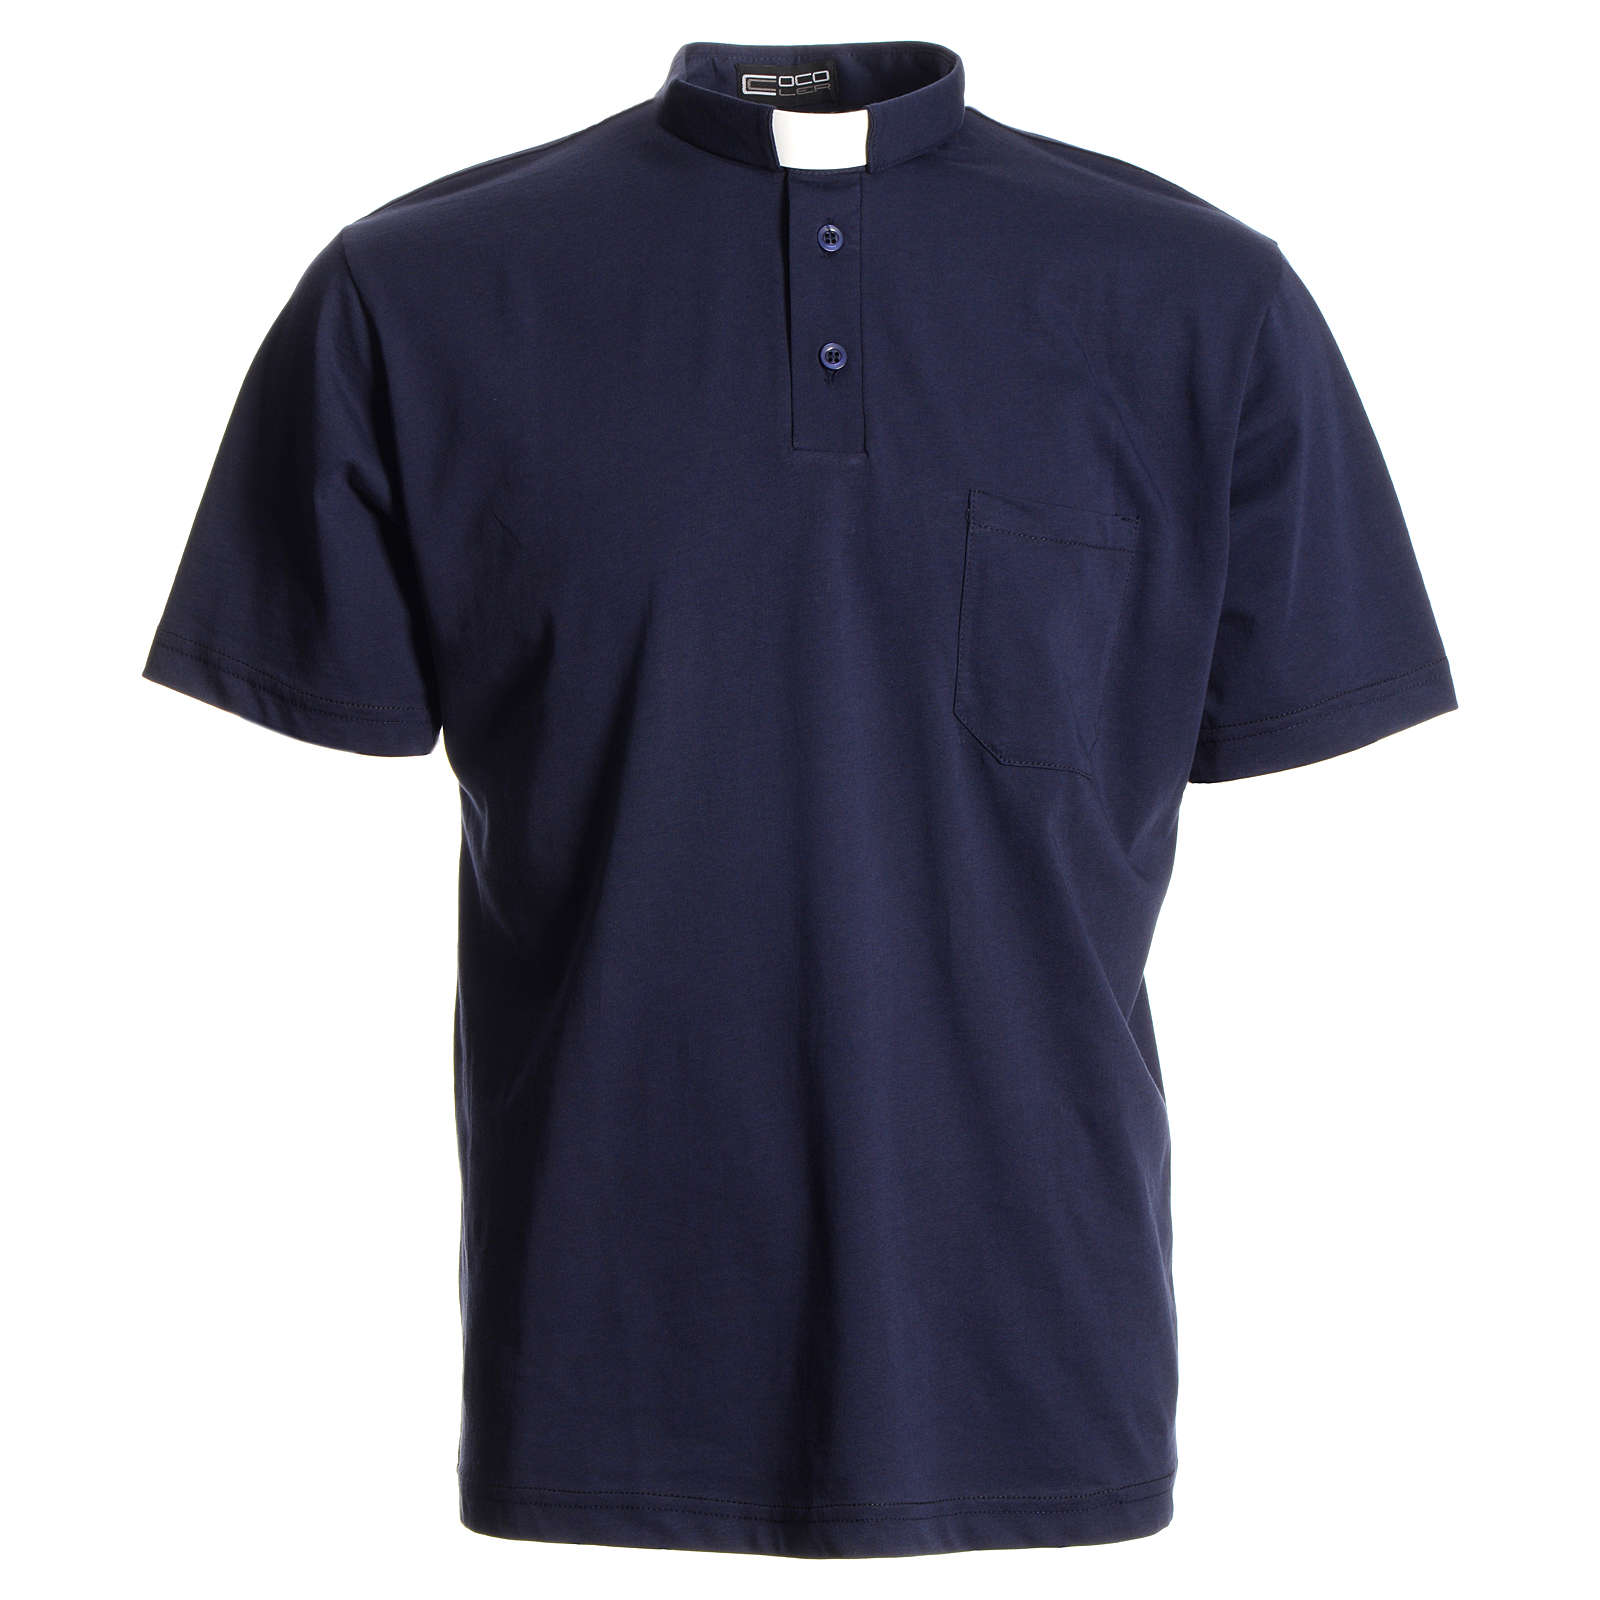 Clergyman polo shirt in navy blue, 100% cotton 4